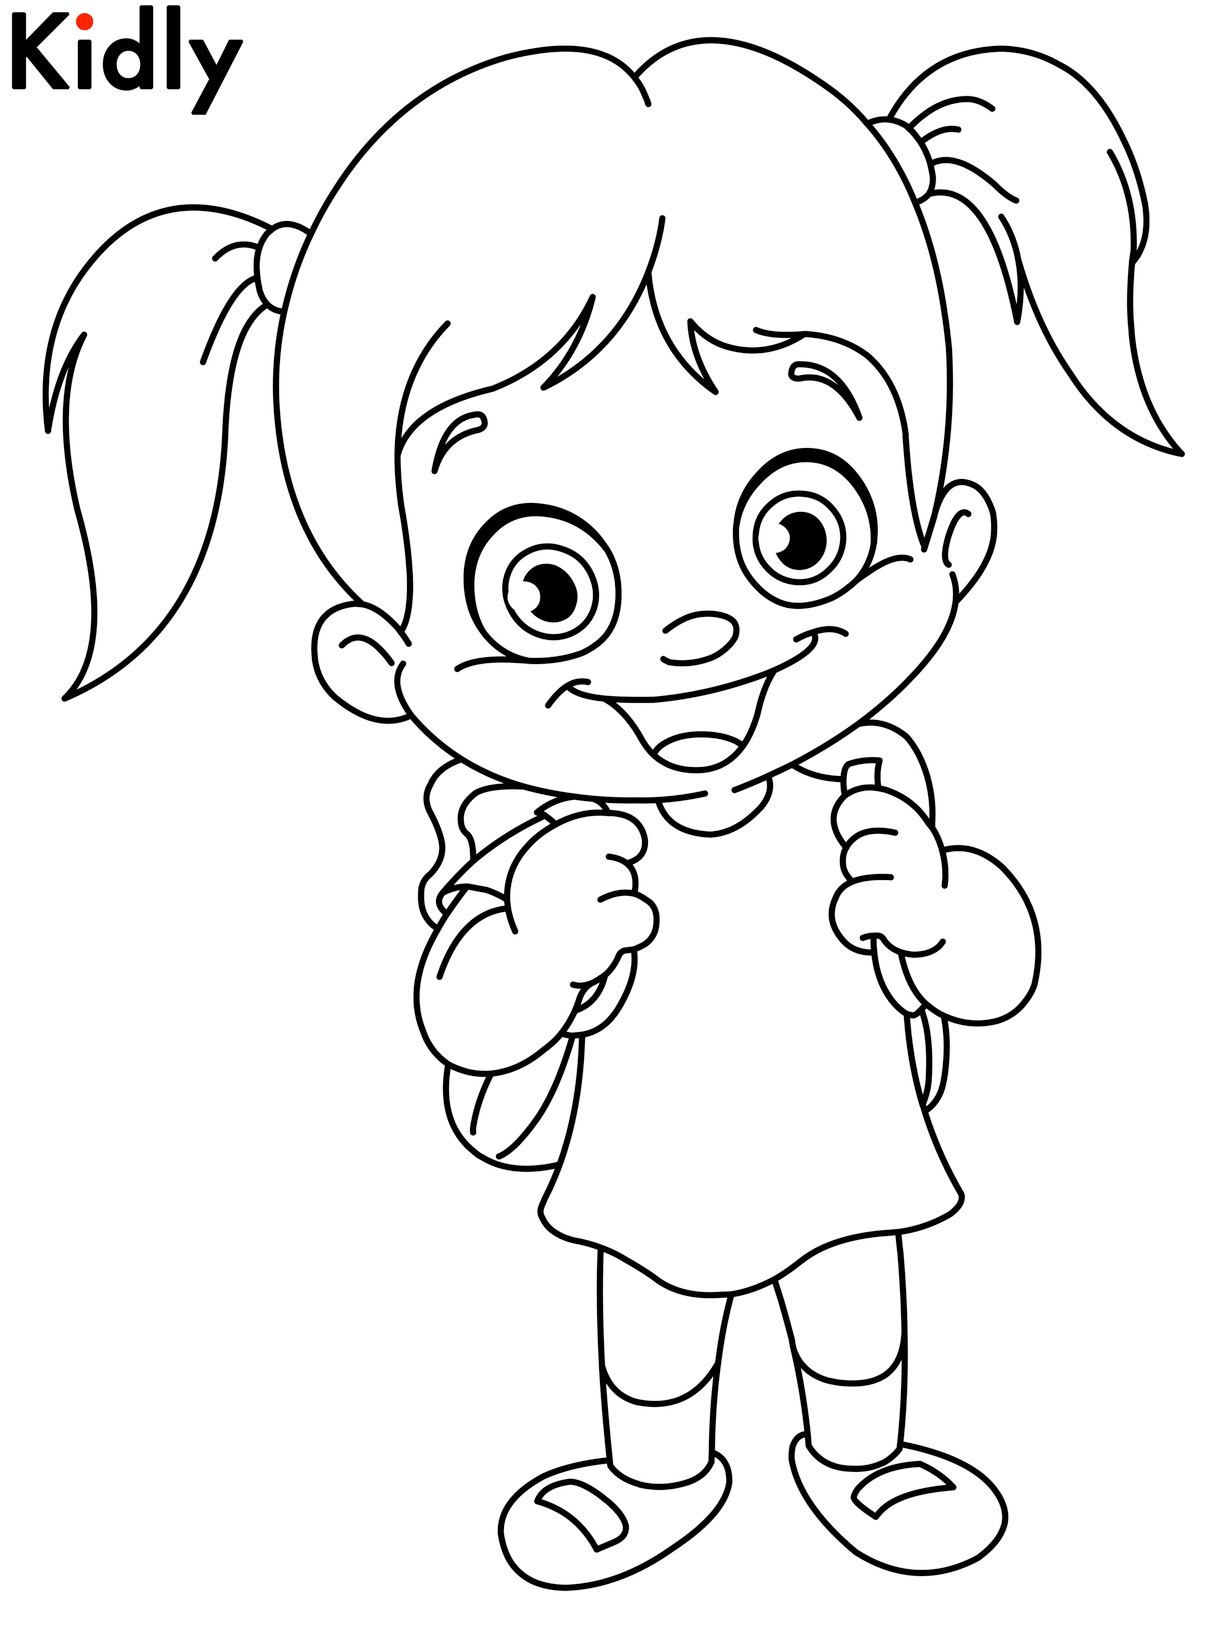 The Best Girlsgogames Coloring Pages - Home Inspiration ...